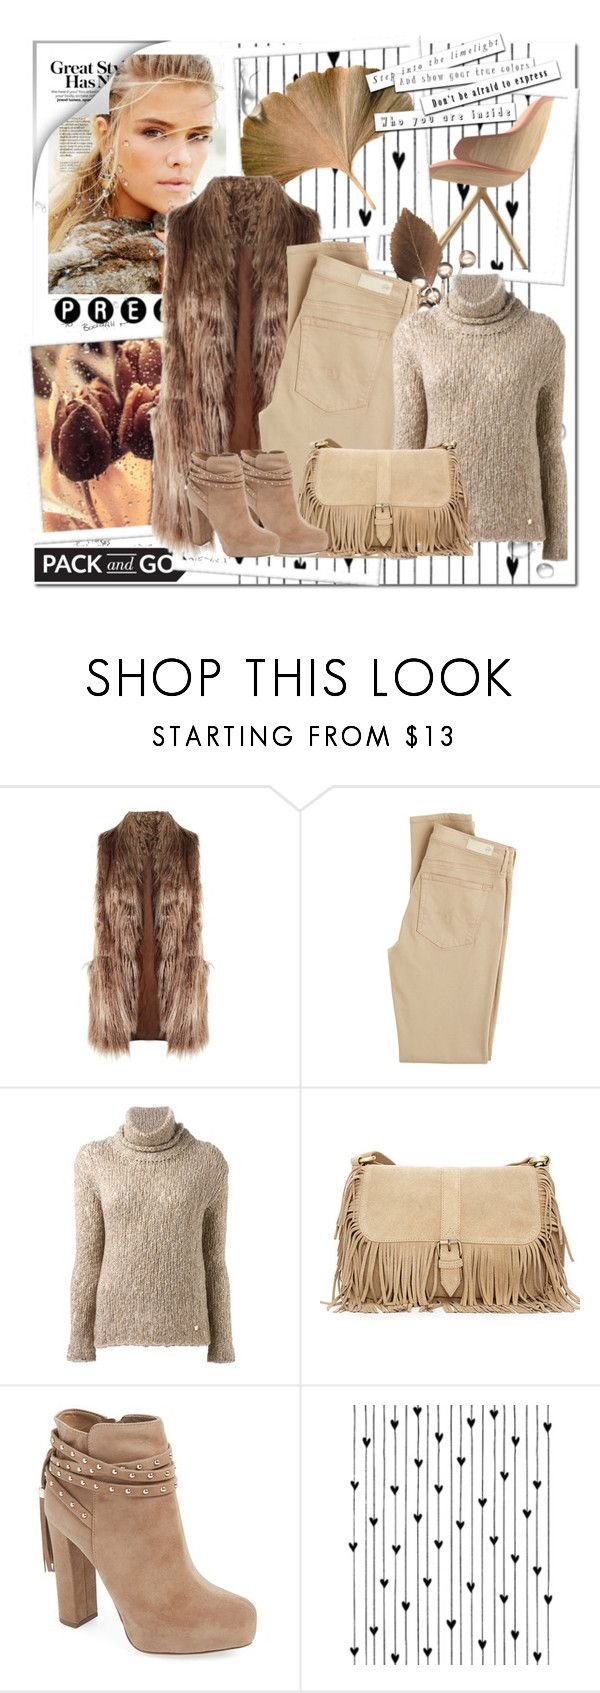 """""""Tuesday Outfit Idea"""" by andrejae ❤ liked on Polyvore featuring Related, AG Adriano Goldschmied, Woolrich, Jessica Simpson, Camp, outfit and outfitidea"""